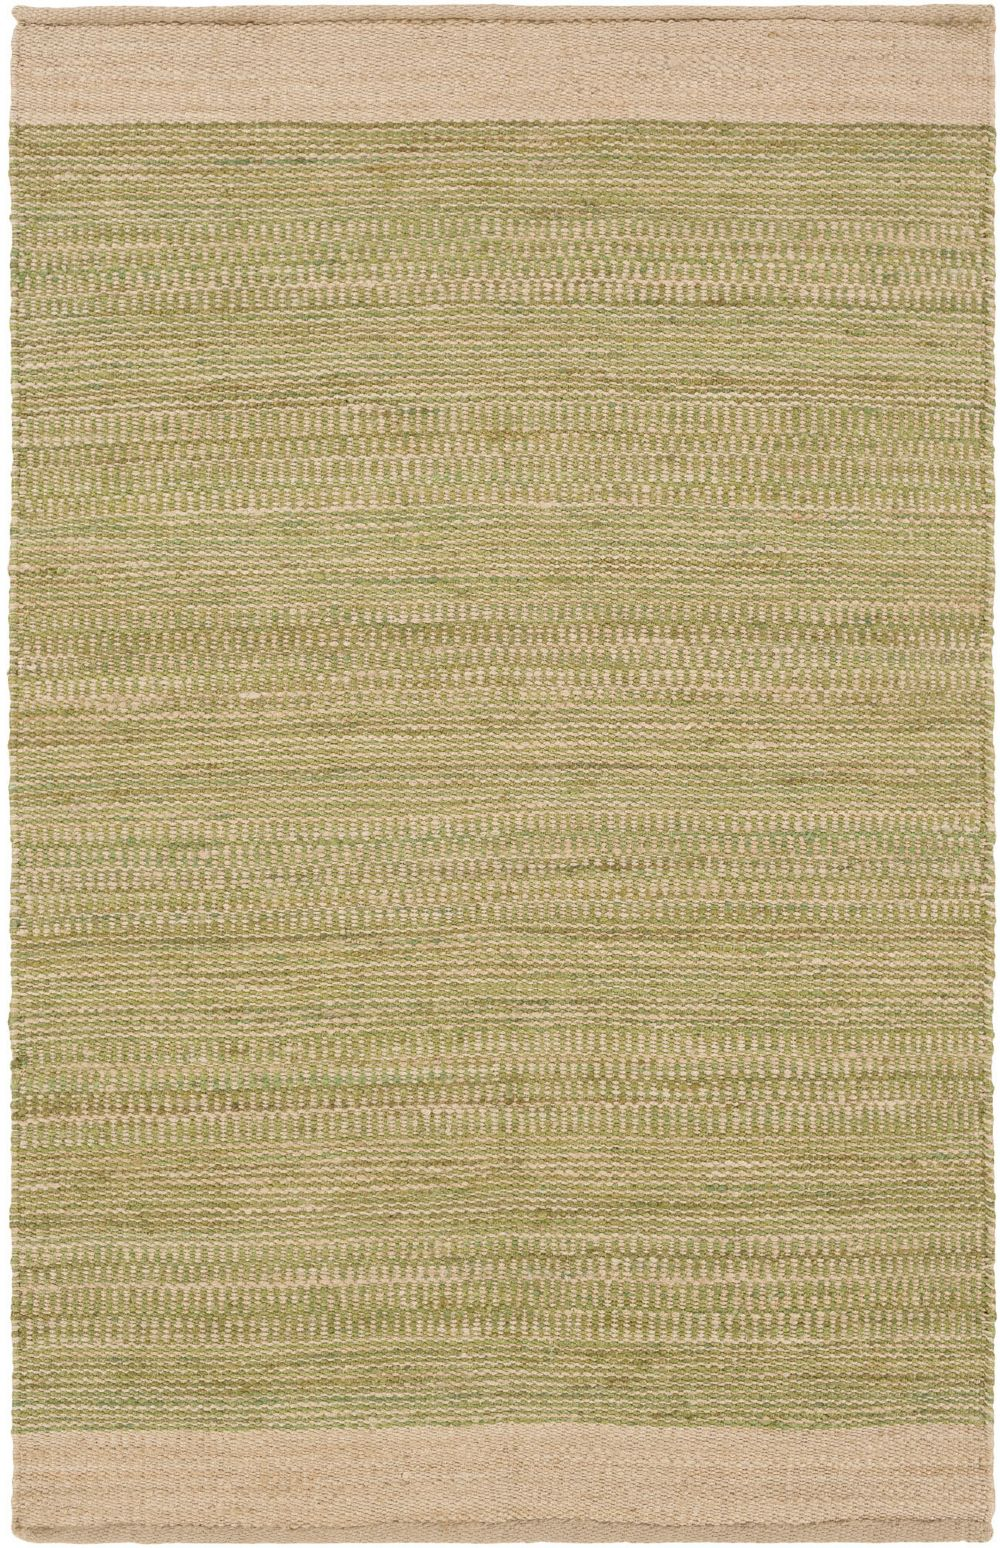 surya davidson natural fiber area rug collection